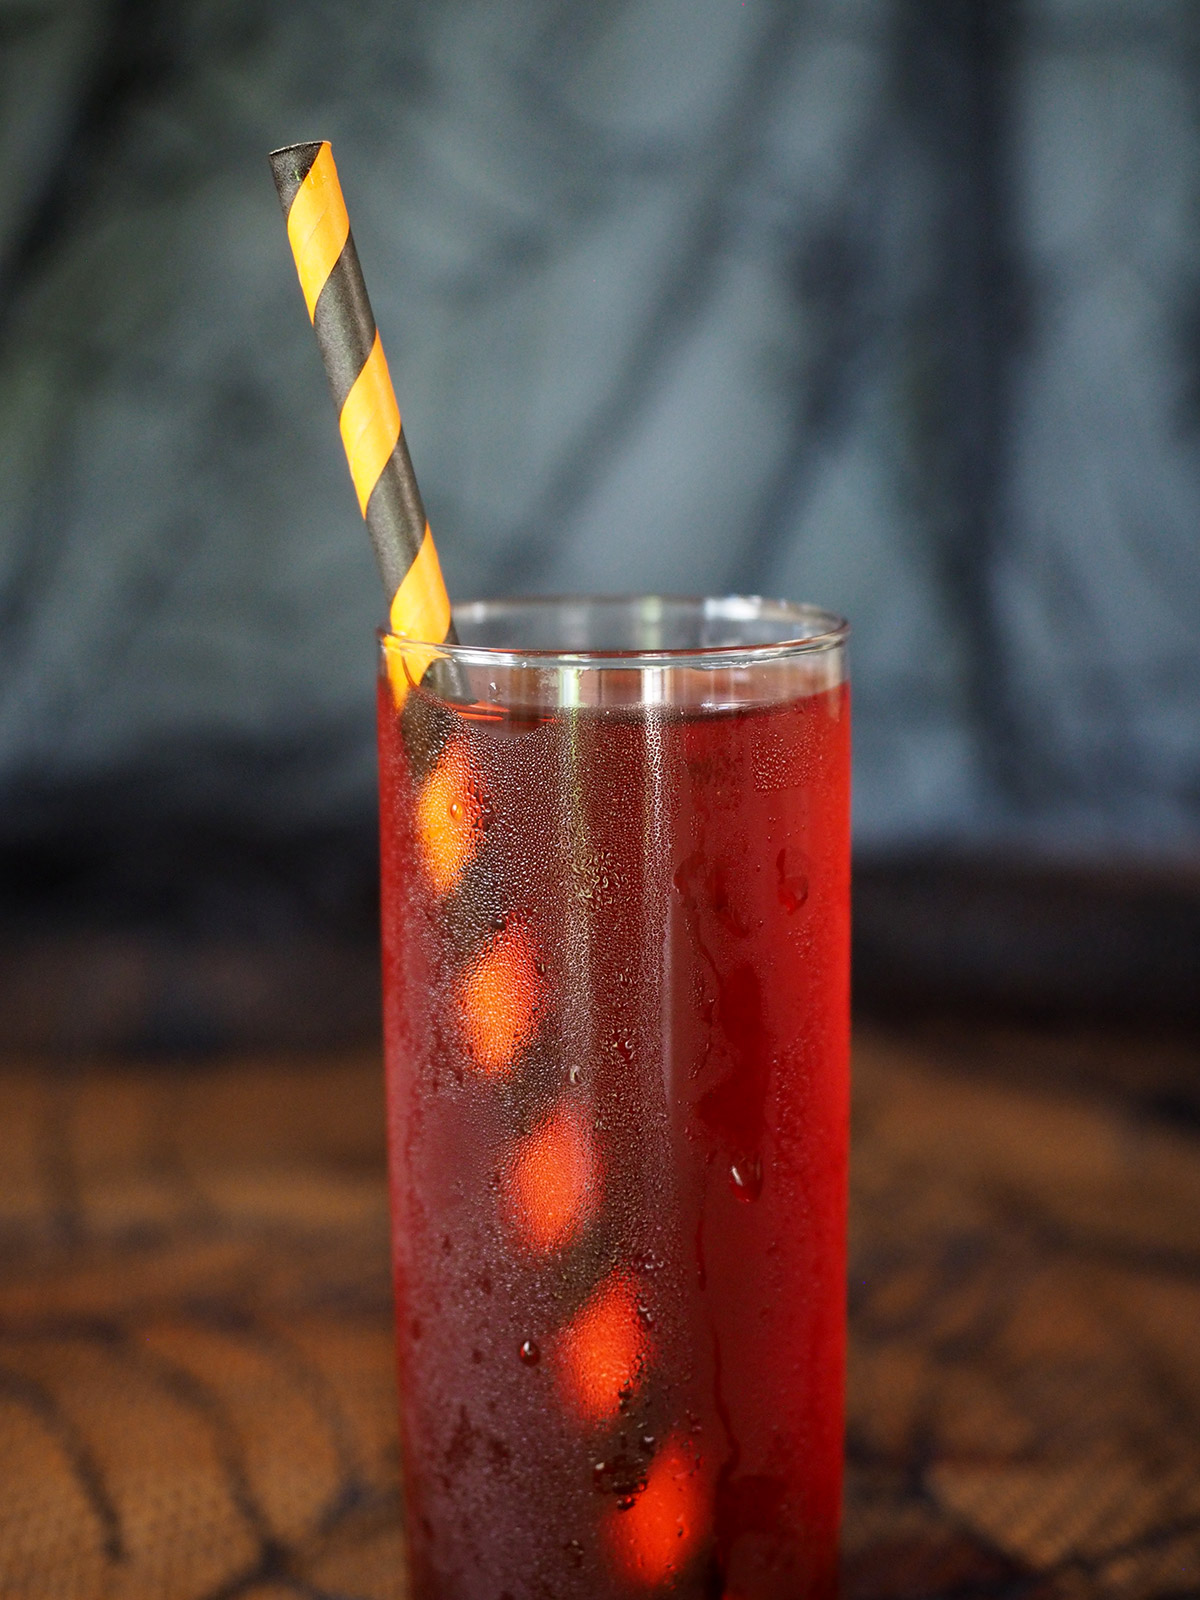 Perfect for Halloween, this cocktail has all the flavor of a Negroni but is lightened up with fruity Blood Orange Iced Tea and sweet maraschino cherries. It's a spooky and bloody drink for a Halloween party or night of candy duty.